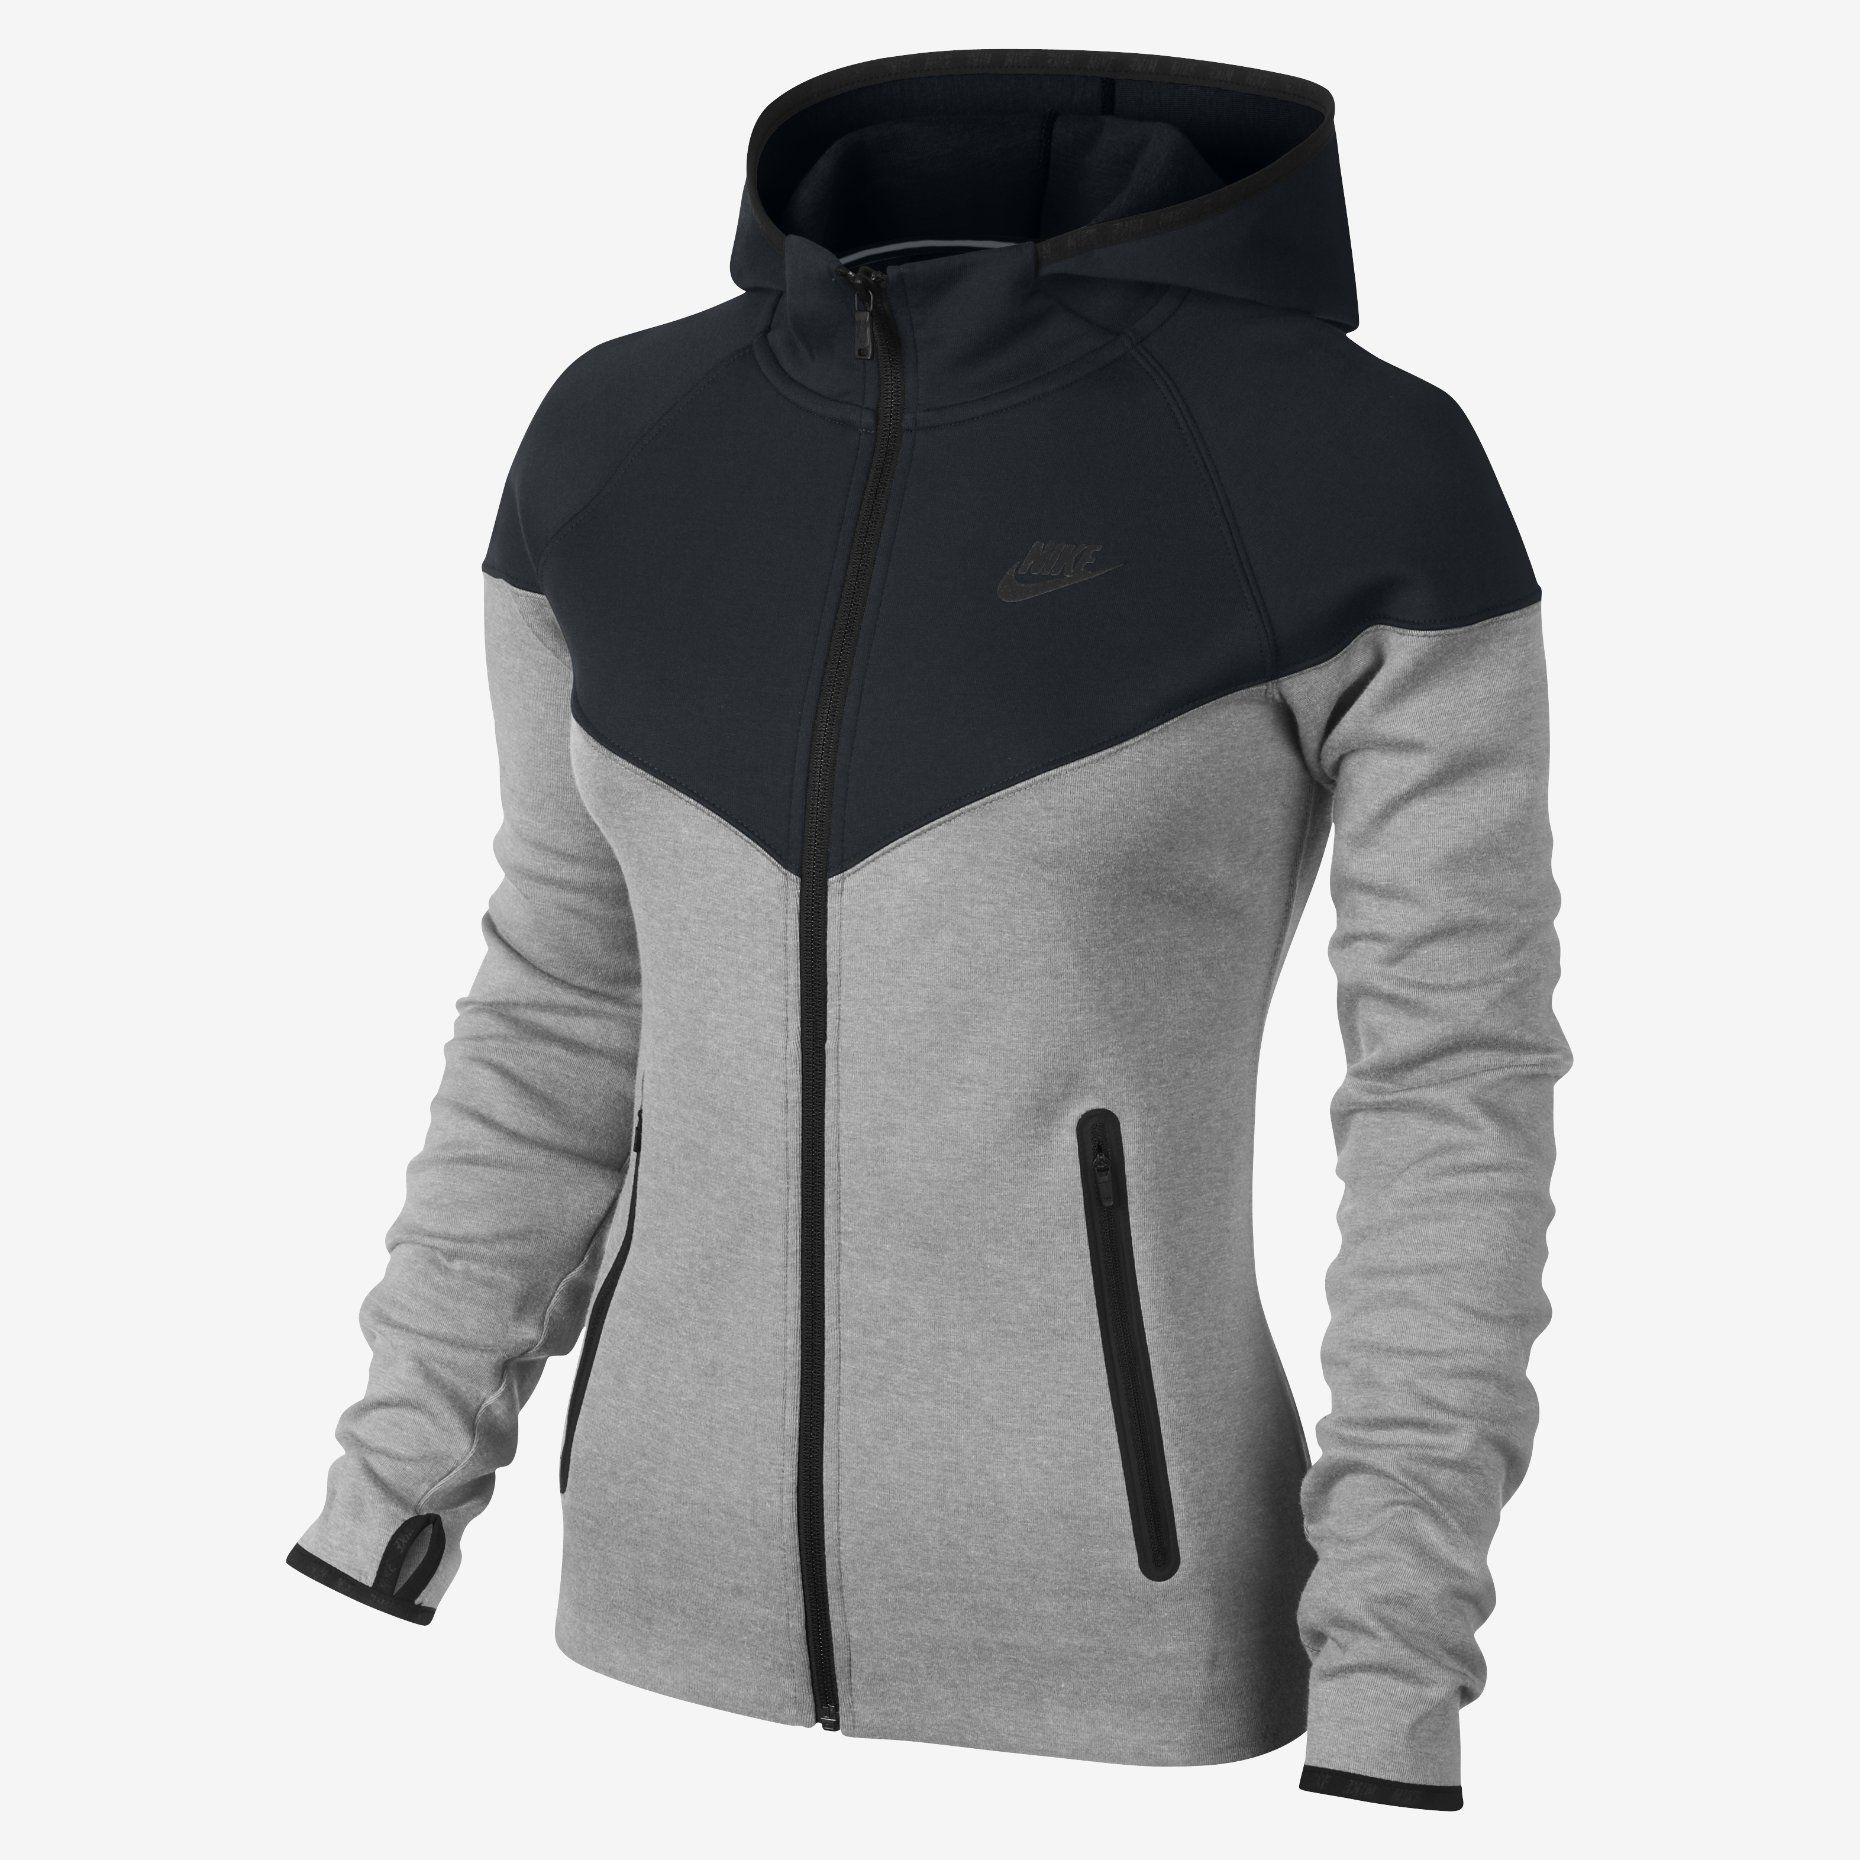 e0af4e26b756 Nike Tech Fleece Full-Zip Women s Hoodie. Nike Store